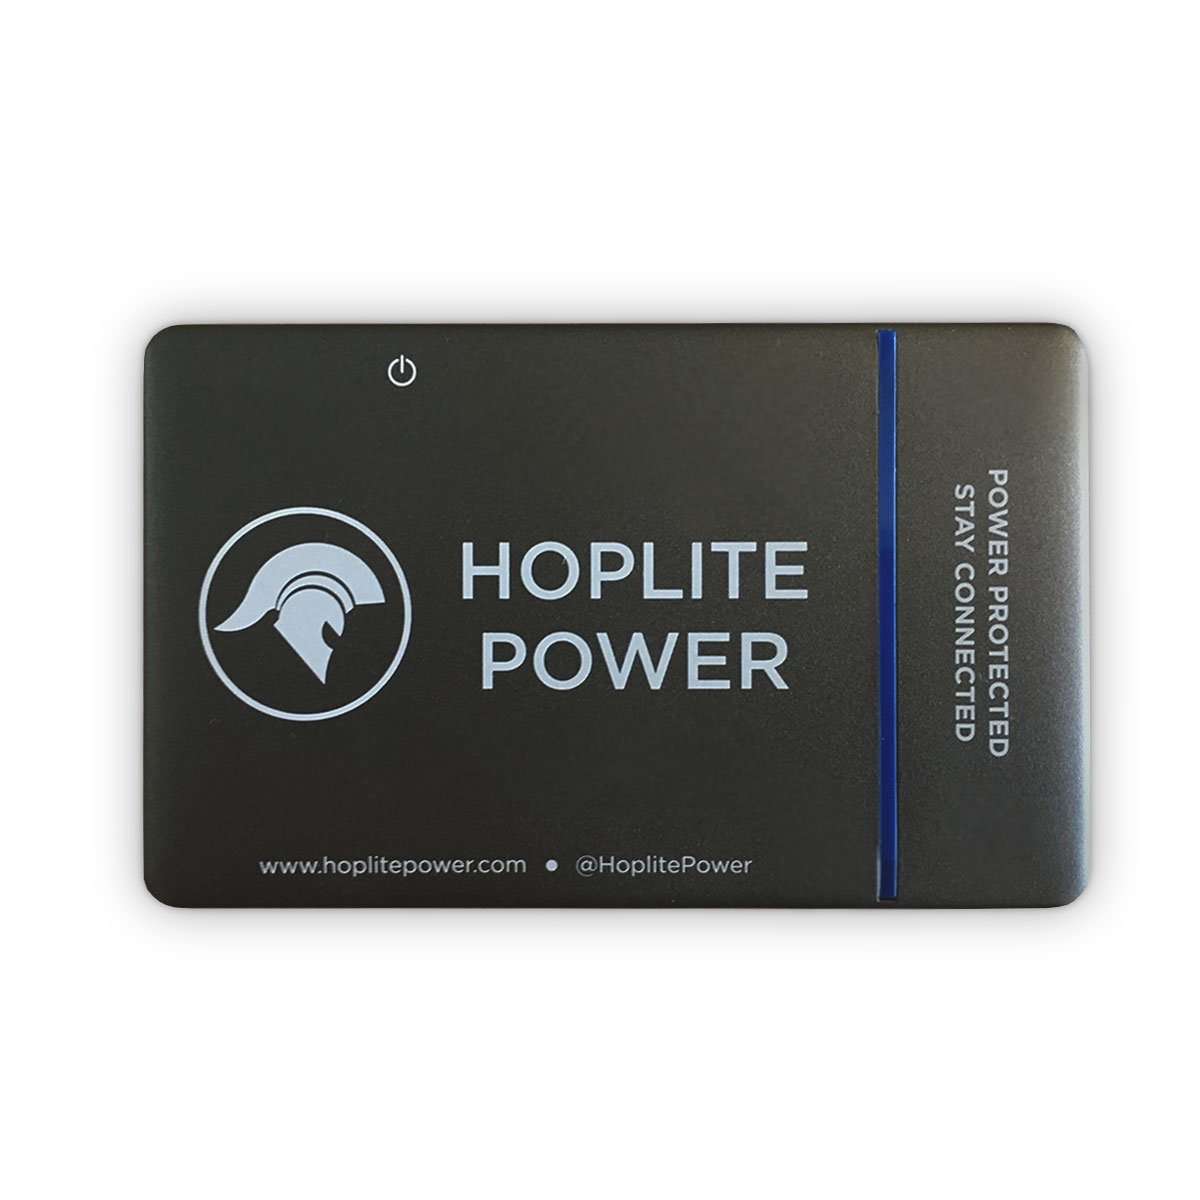 Hoplite Power Mobile Charger Kiosk